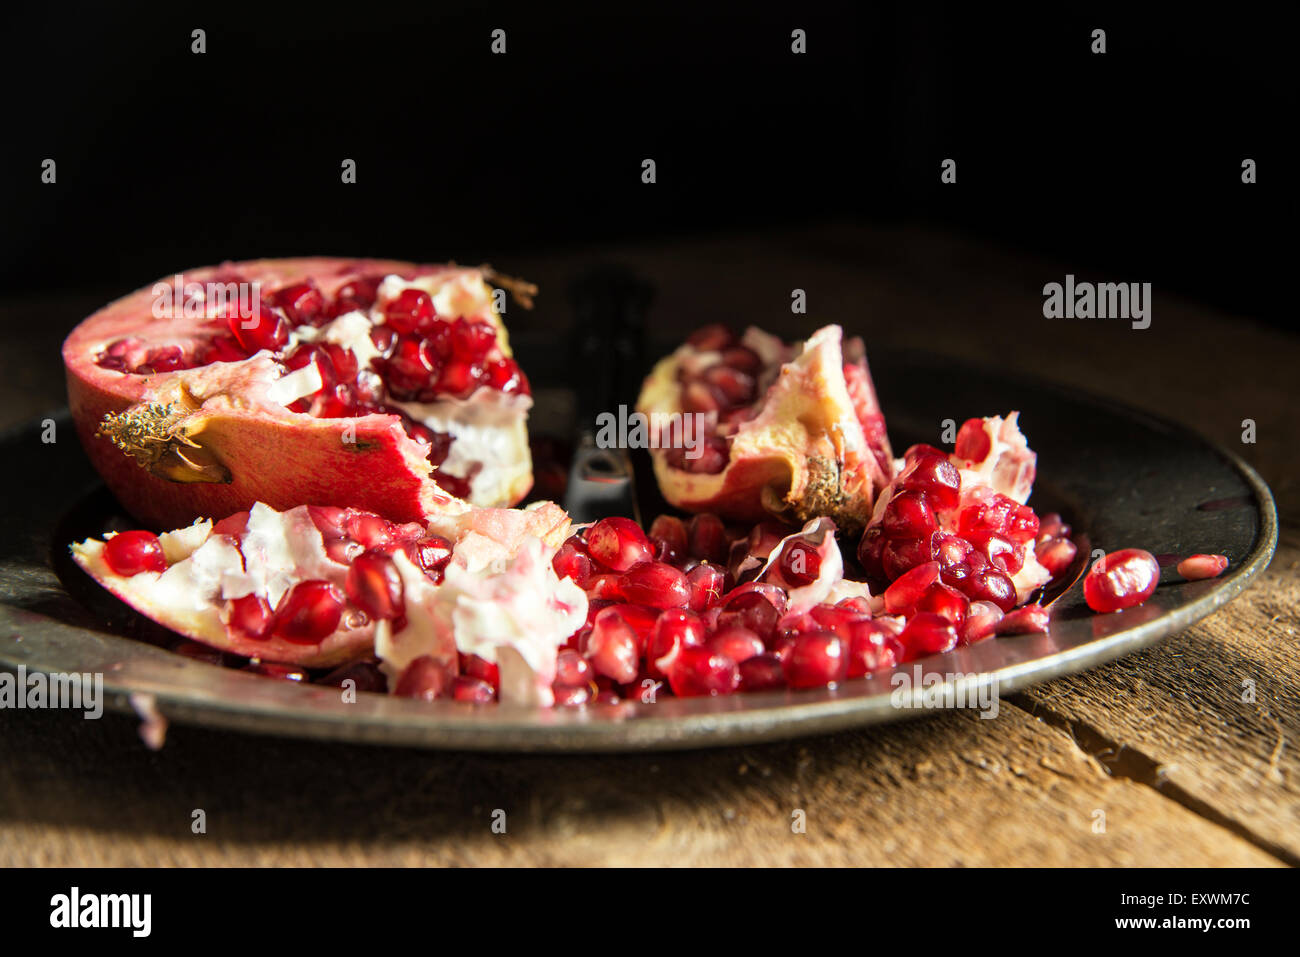 Moody natrual lighting images of fresh juicy pomegranate with vintage style Stock Photo